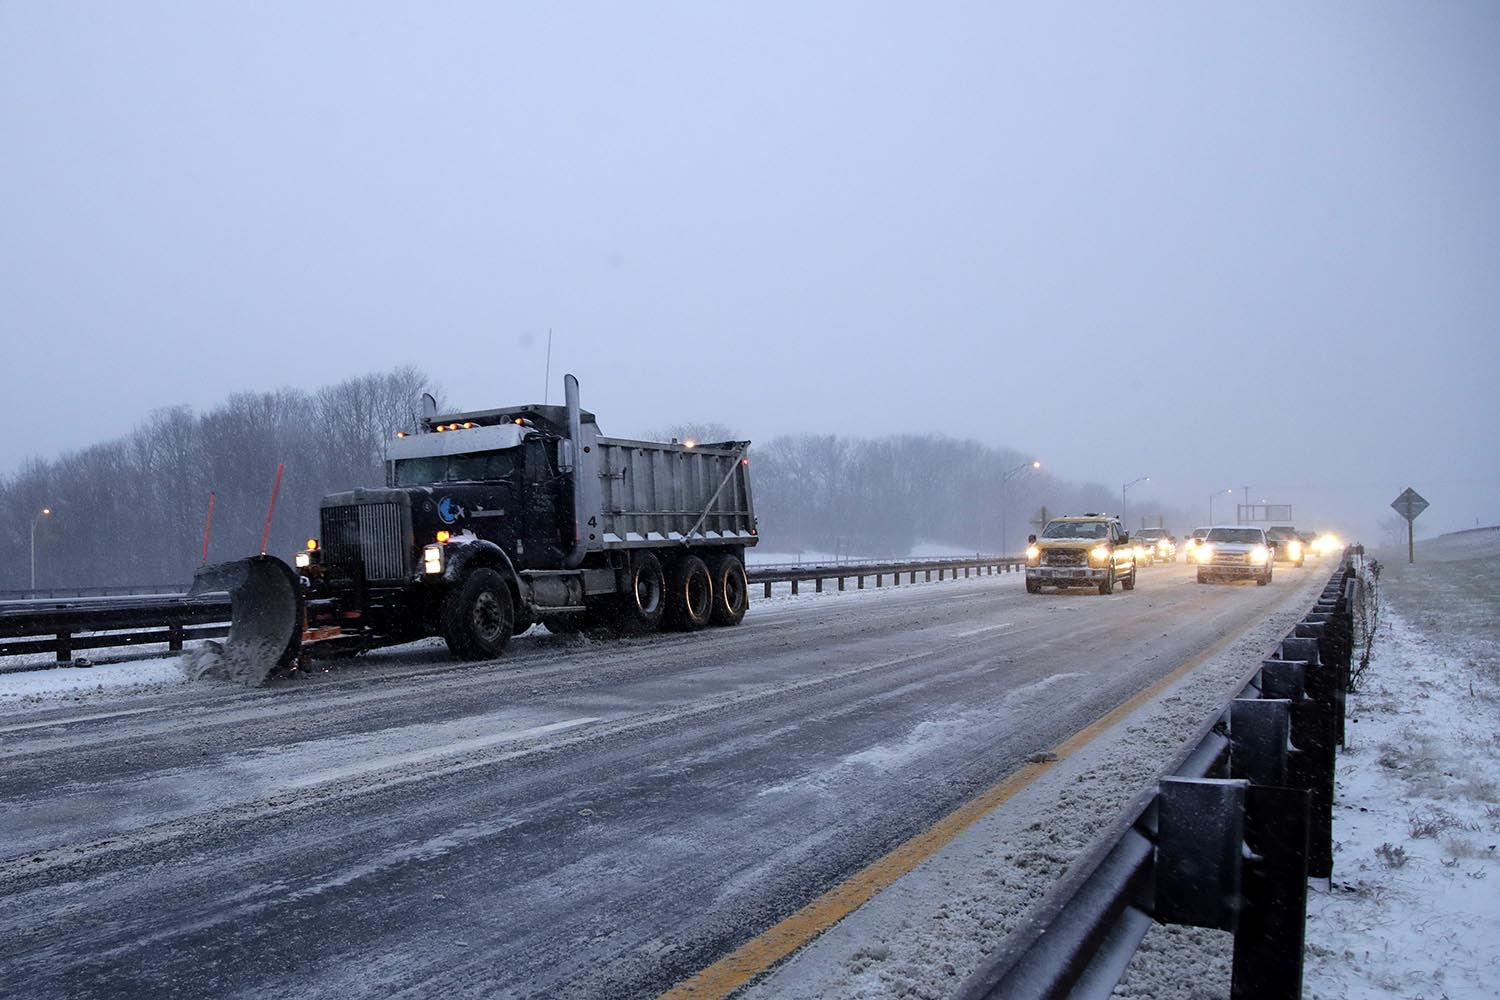 "<div class=""meta image-caption""><div class=""origin-logo origin-image ap""><span>AP</span></div><span class=""caption-text"">Traffic follows behind a plow clearing snow off the Garden State Parkway during a snowstorm, Thursday, Jan. 4, 2018, in South Amboy, N.J. (AP Photo/Julio Cortez)</span></div>"